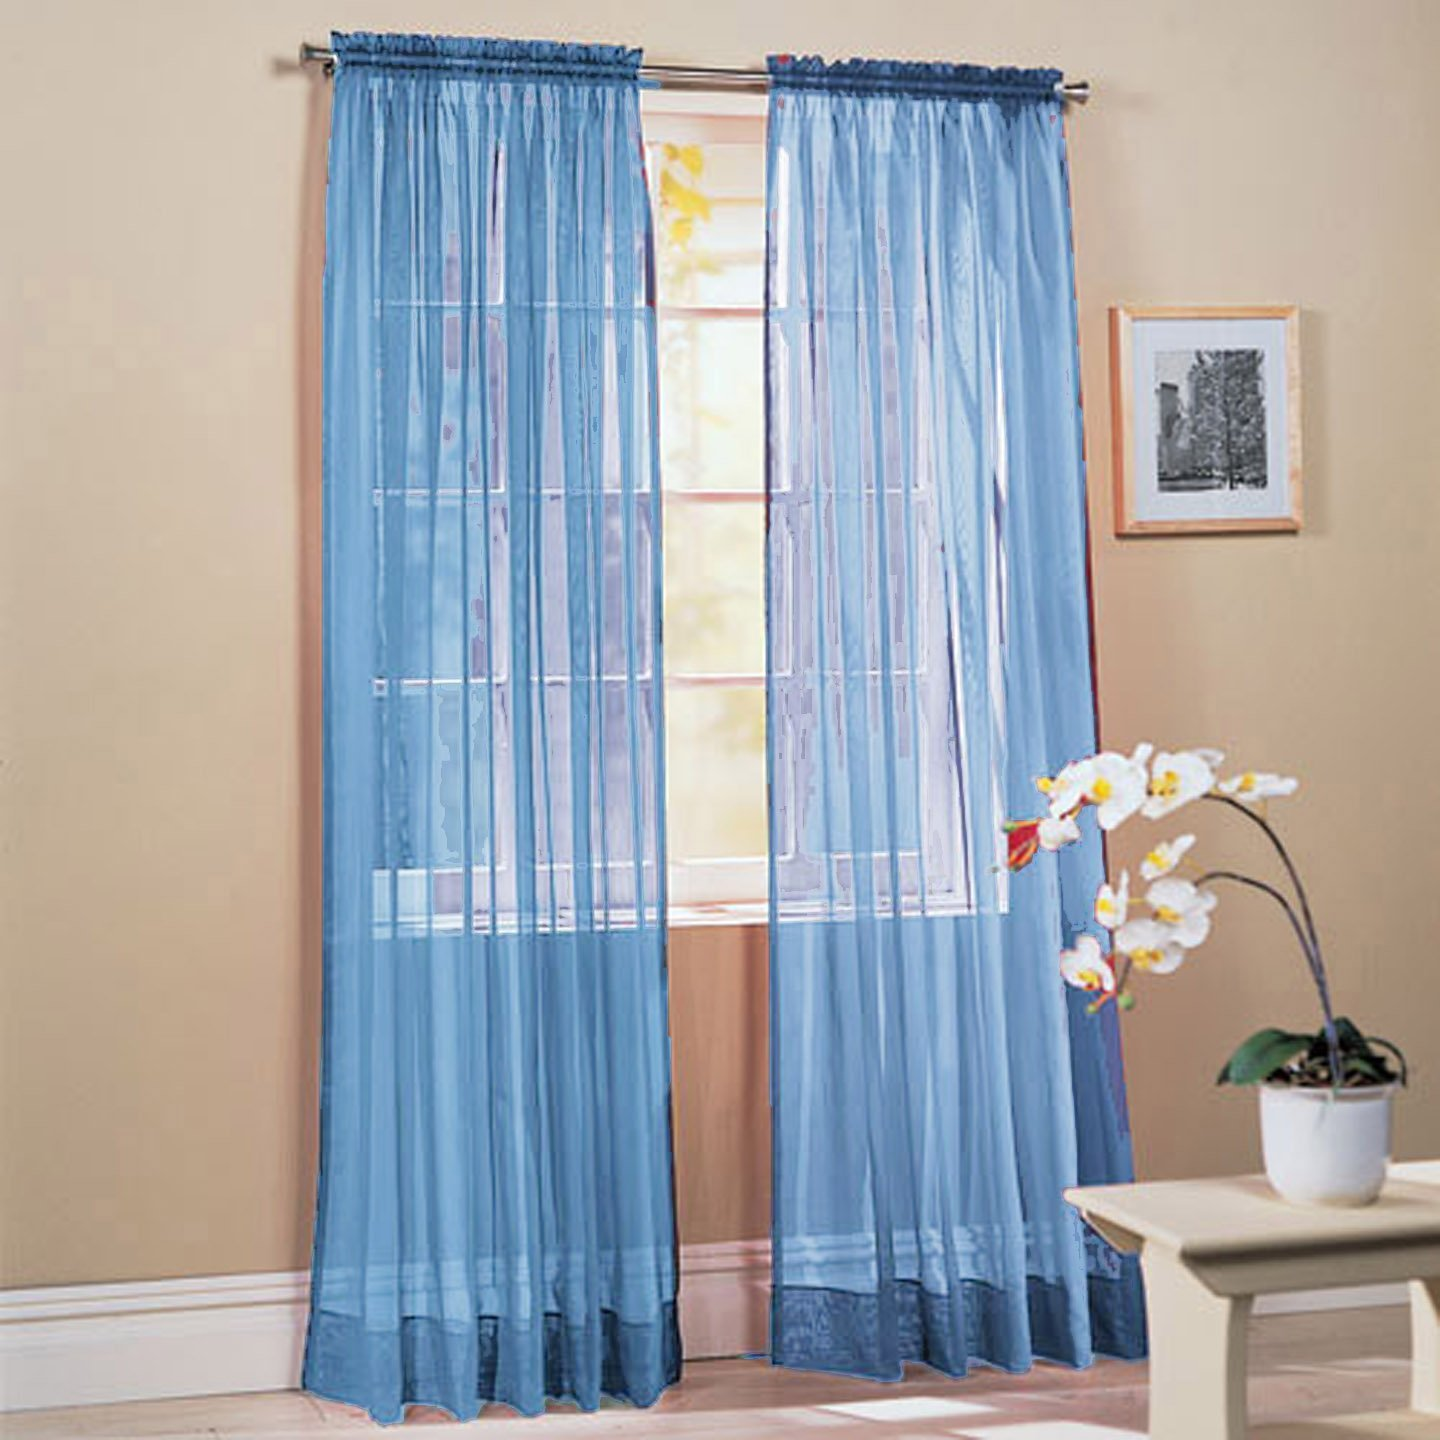 drape country panels designs startling shower and window room drapes curtains treatments for rooms park living valances